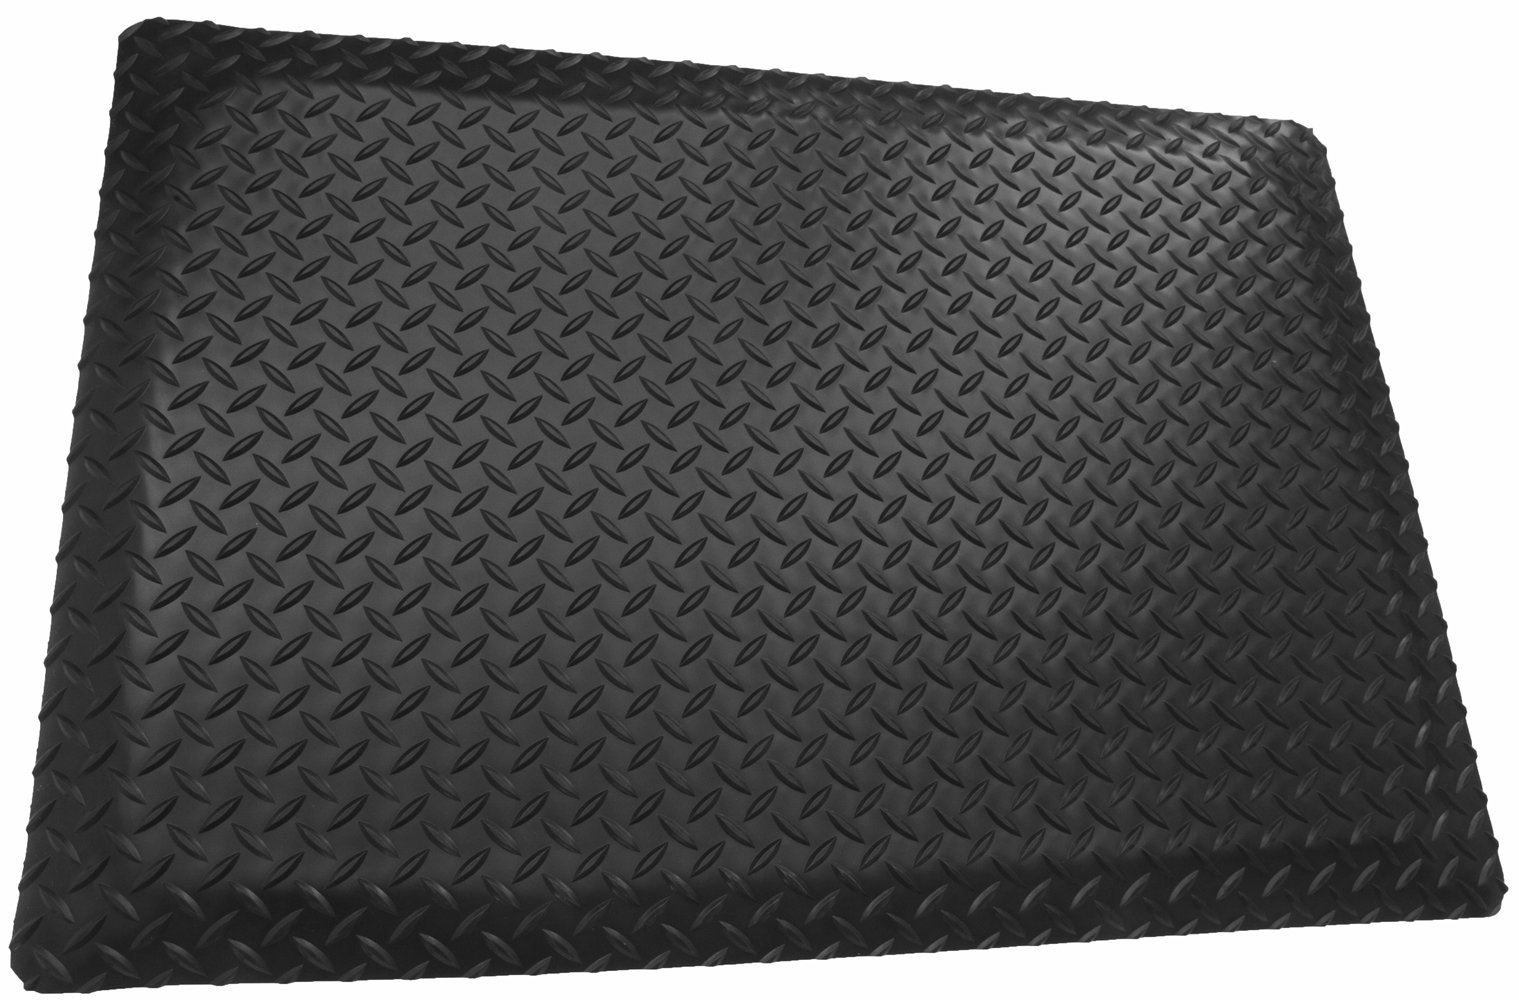 Rhino Mats DP-4848D Diamond Plate Pattern Dual Purpose Dielectric Anti-Fatigue Mat, 4' Width x 4' Length x 5/8'' Thickness, ASTM Type II Class 2, Black